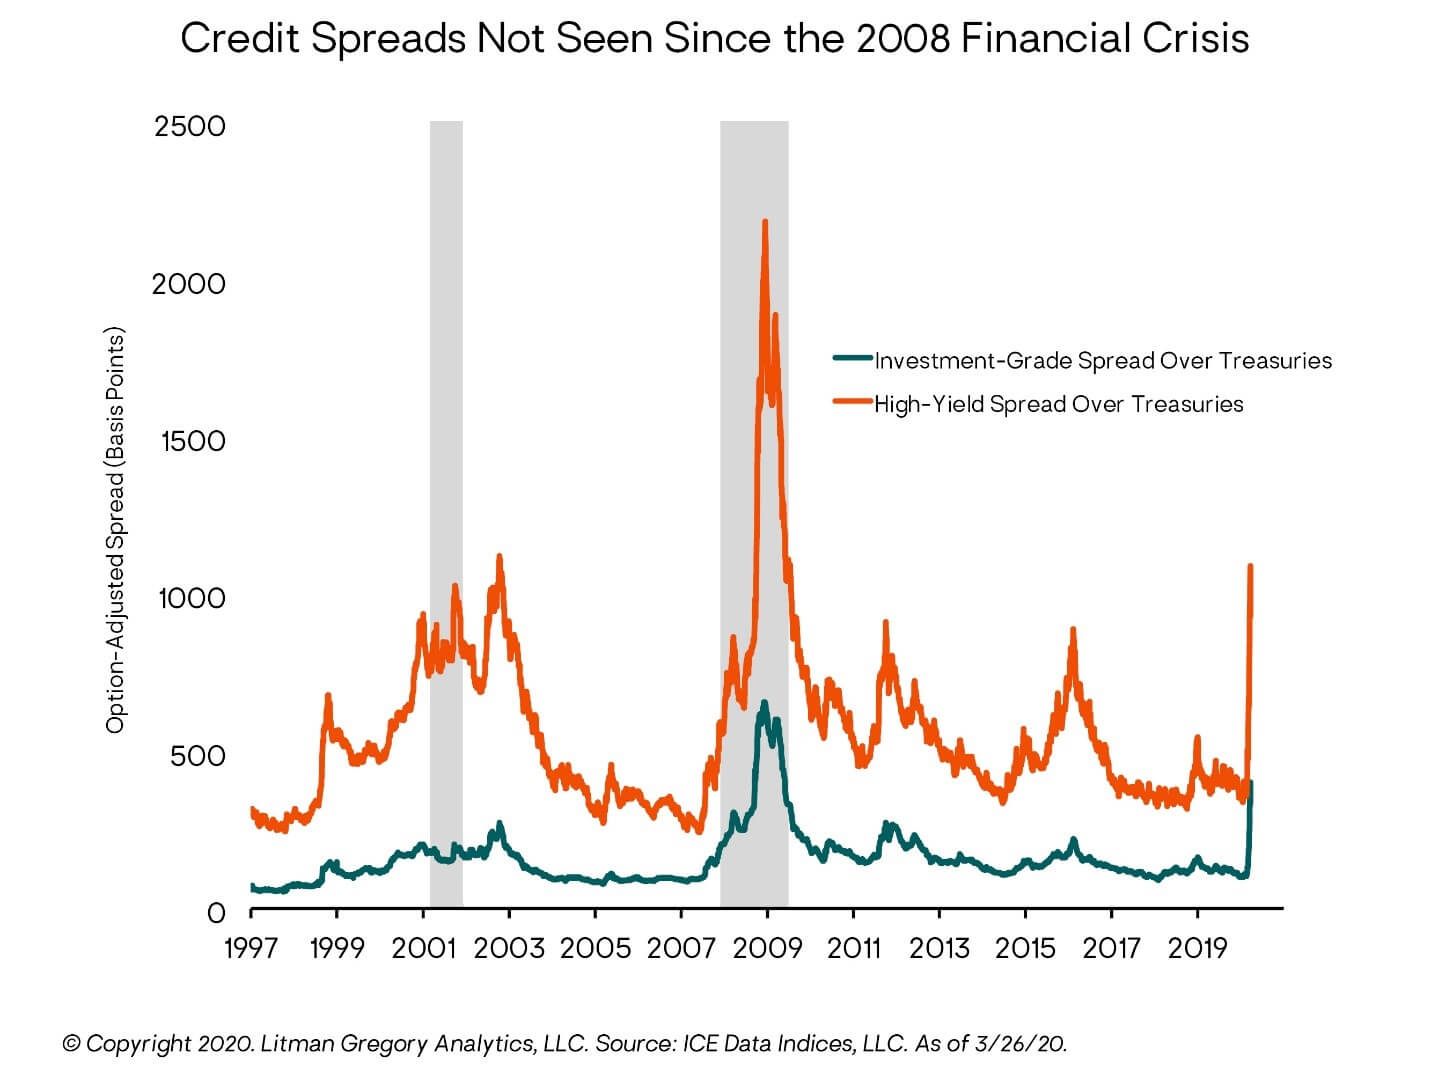 Credit Spreads Not Seen Since 2008 Financial Crisis